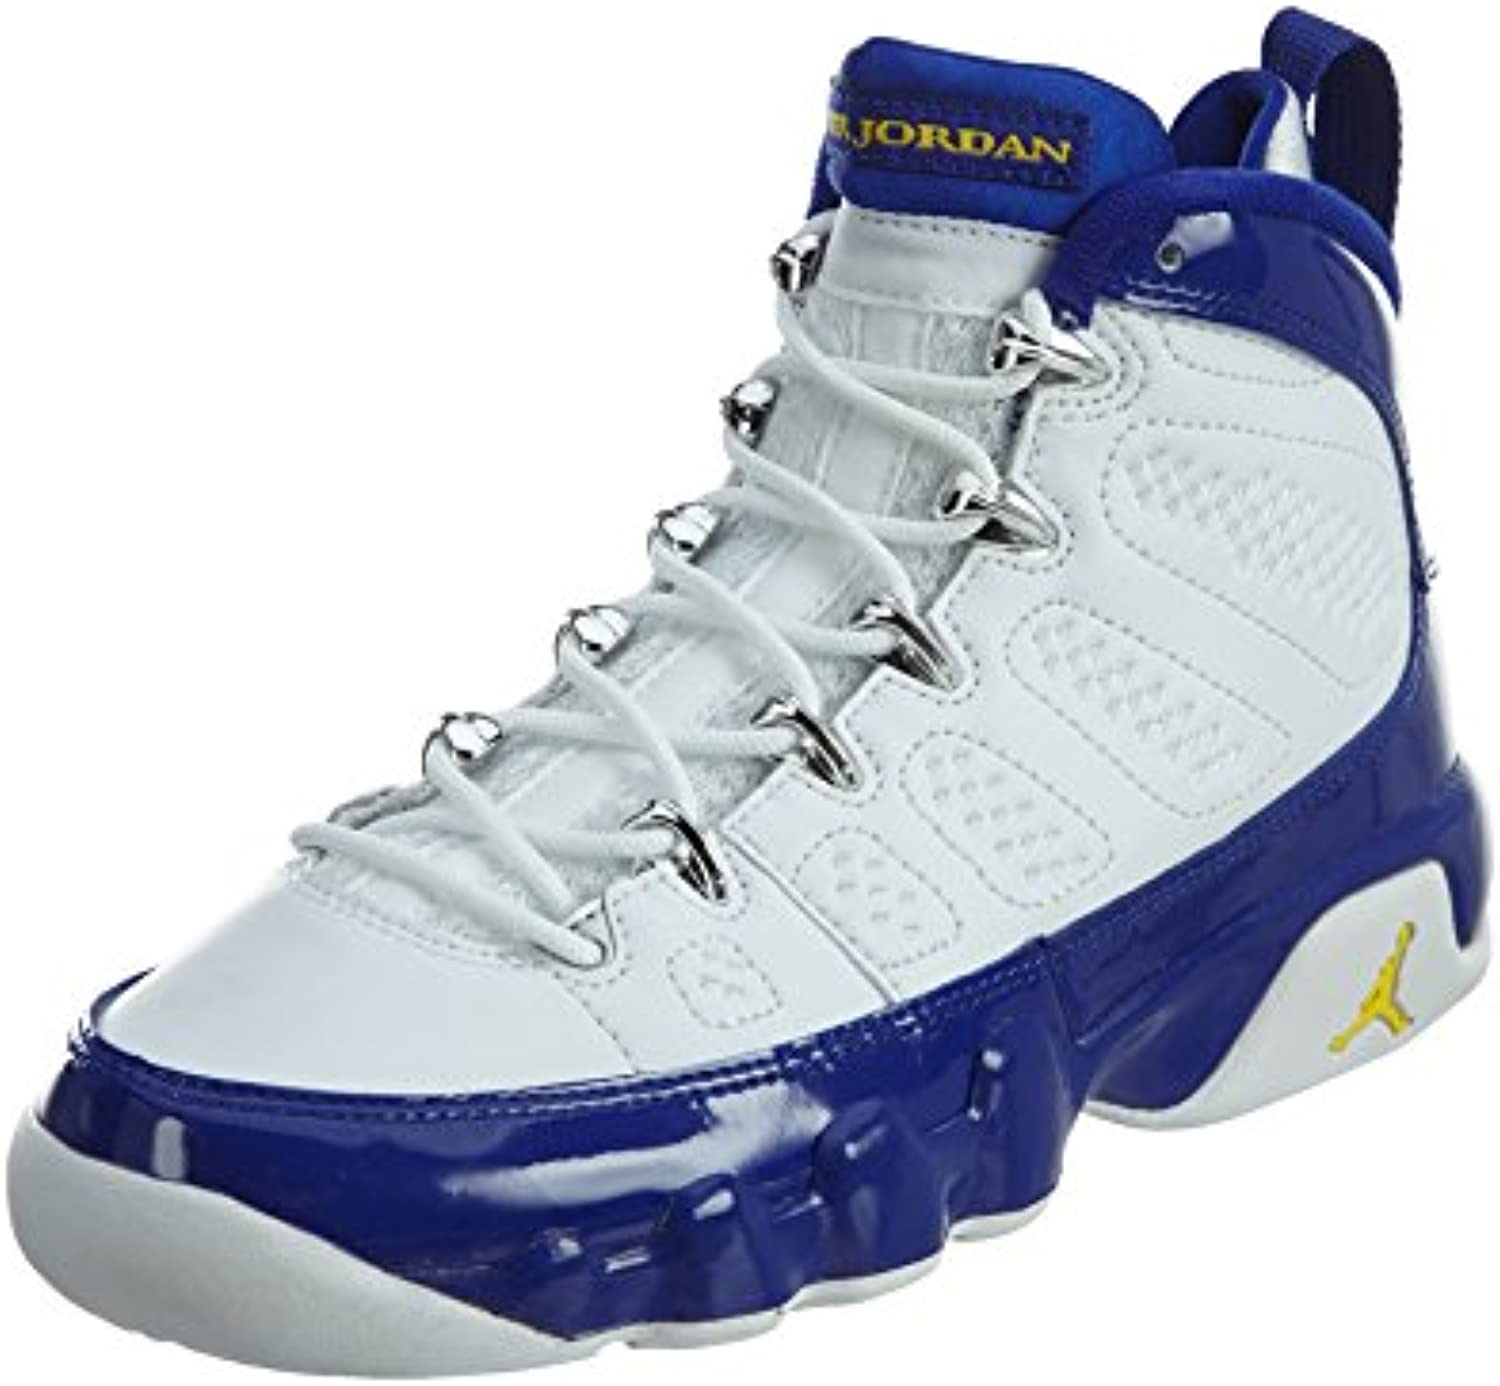 Man's/Woman's NIKE Boys' Boys' Boys' 302359-121 Basketball Shoes economic delicate Selling new products f6e811